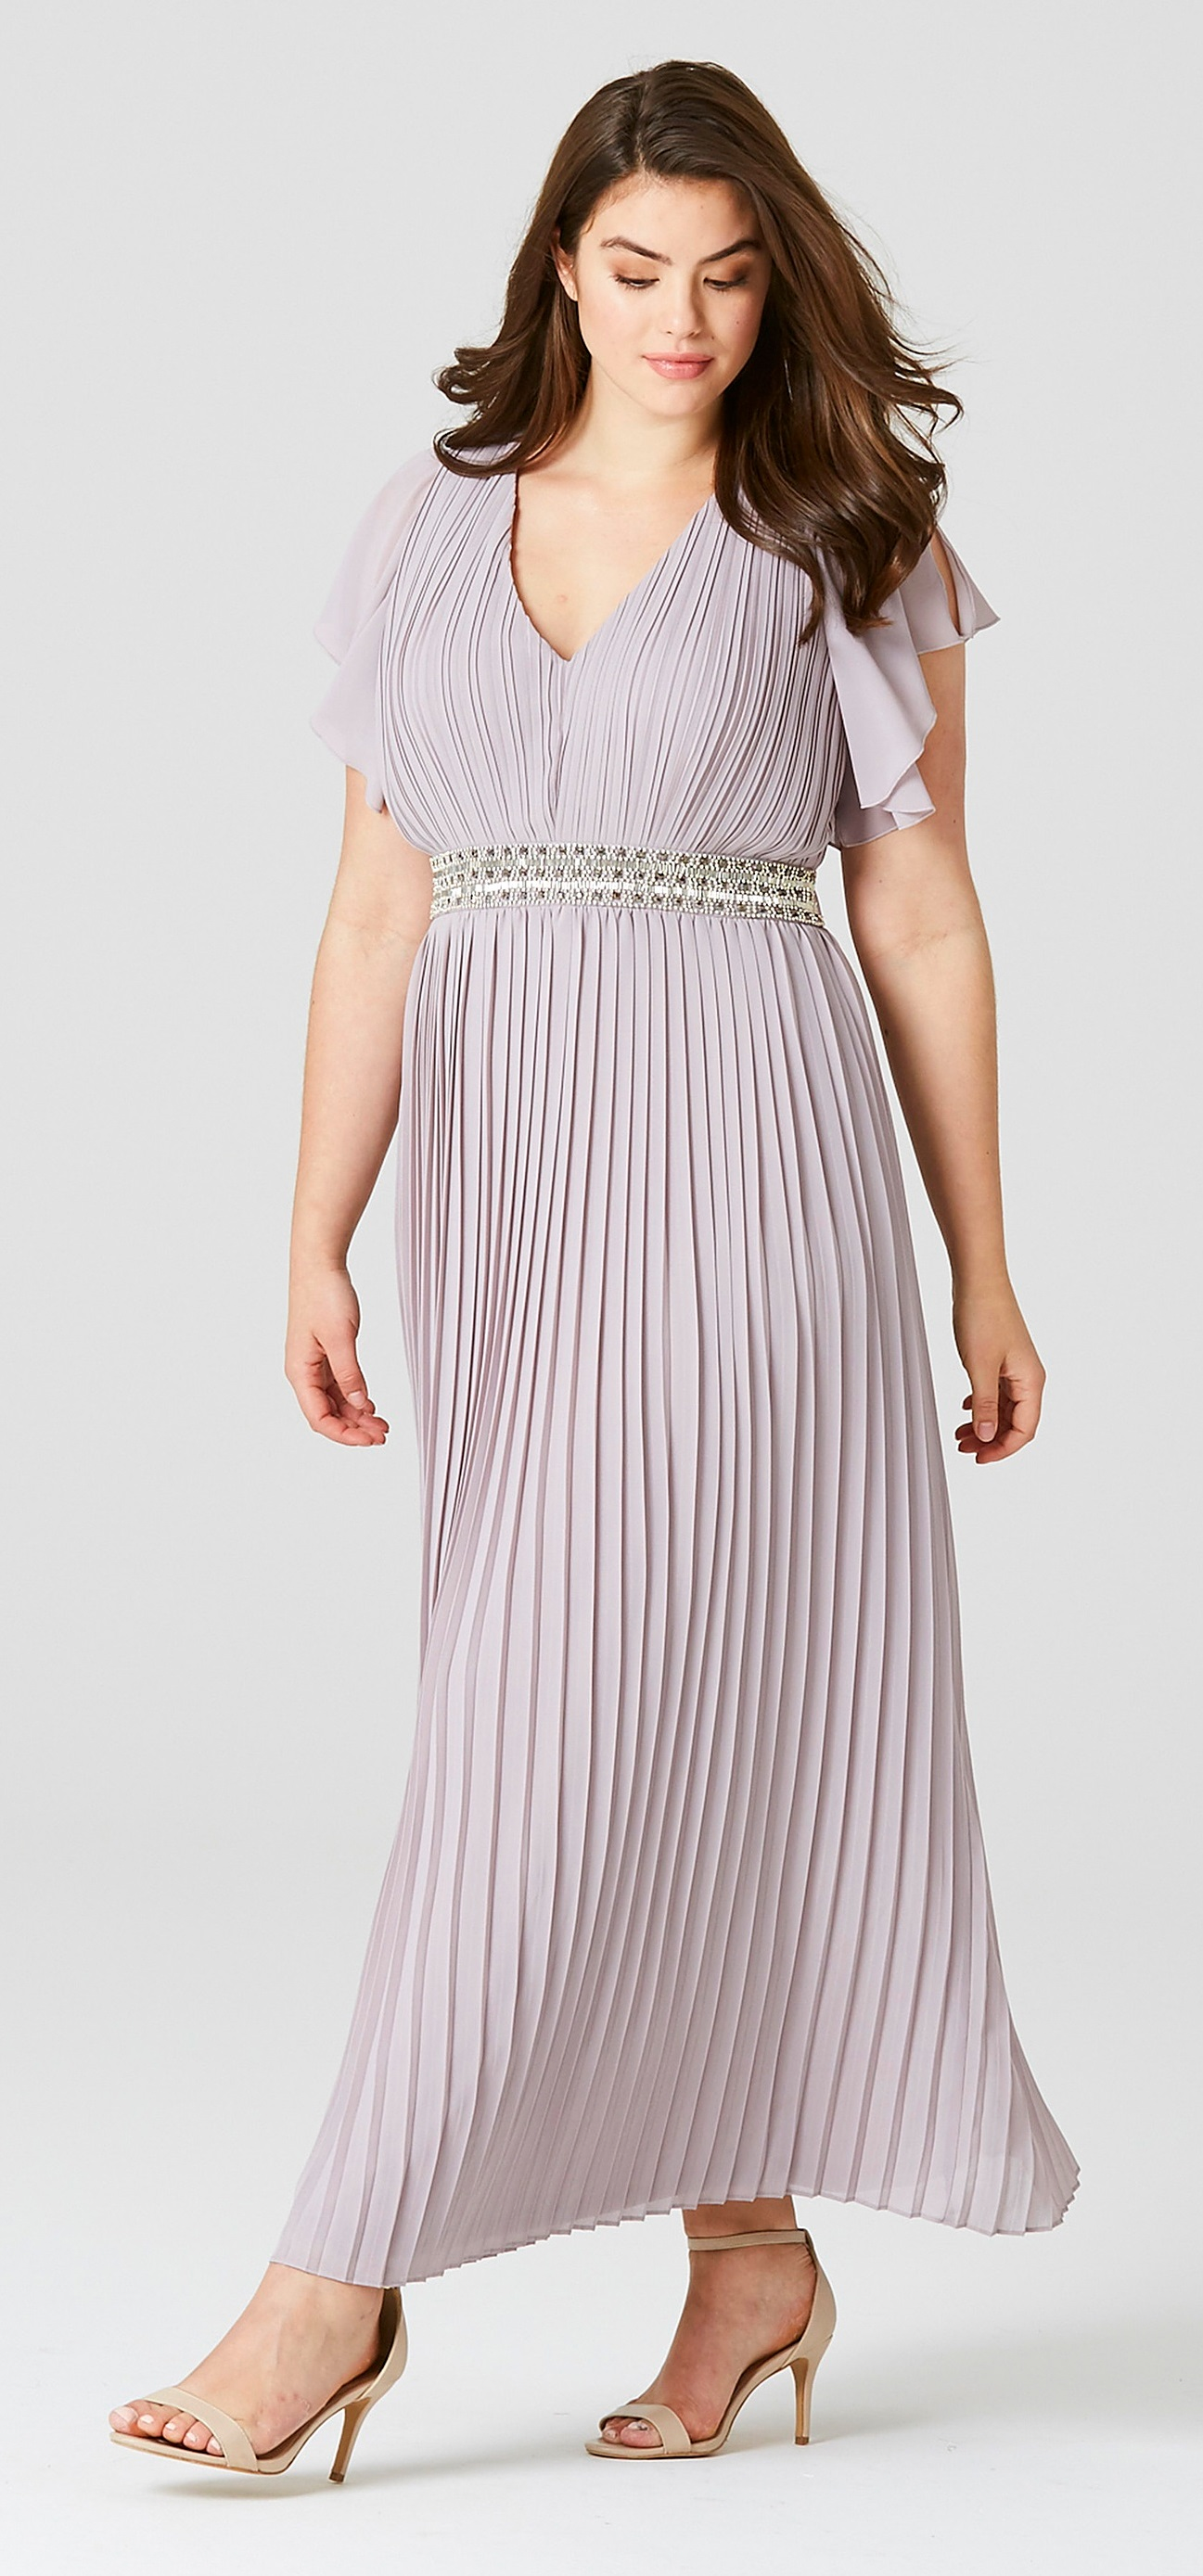 Superieur 45 Plus Size Wedding Guest Dresses {with Sleeves}   Plus Size Cocktail  Dresses